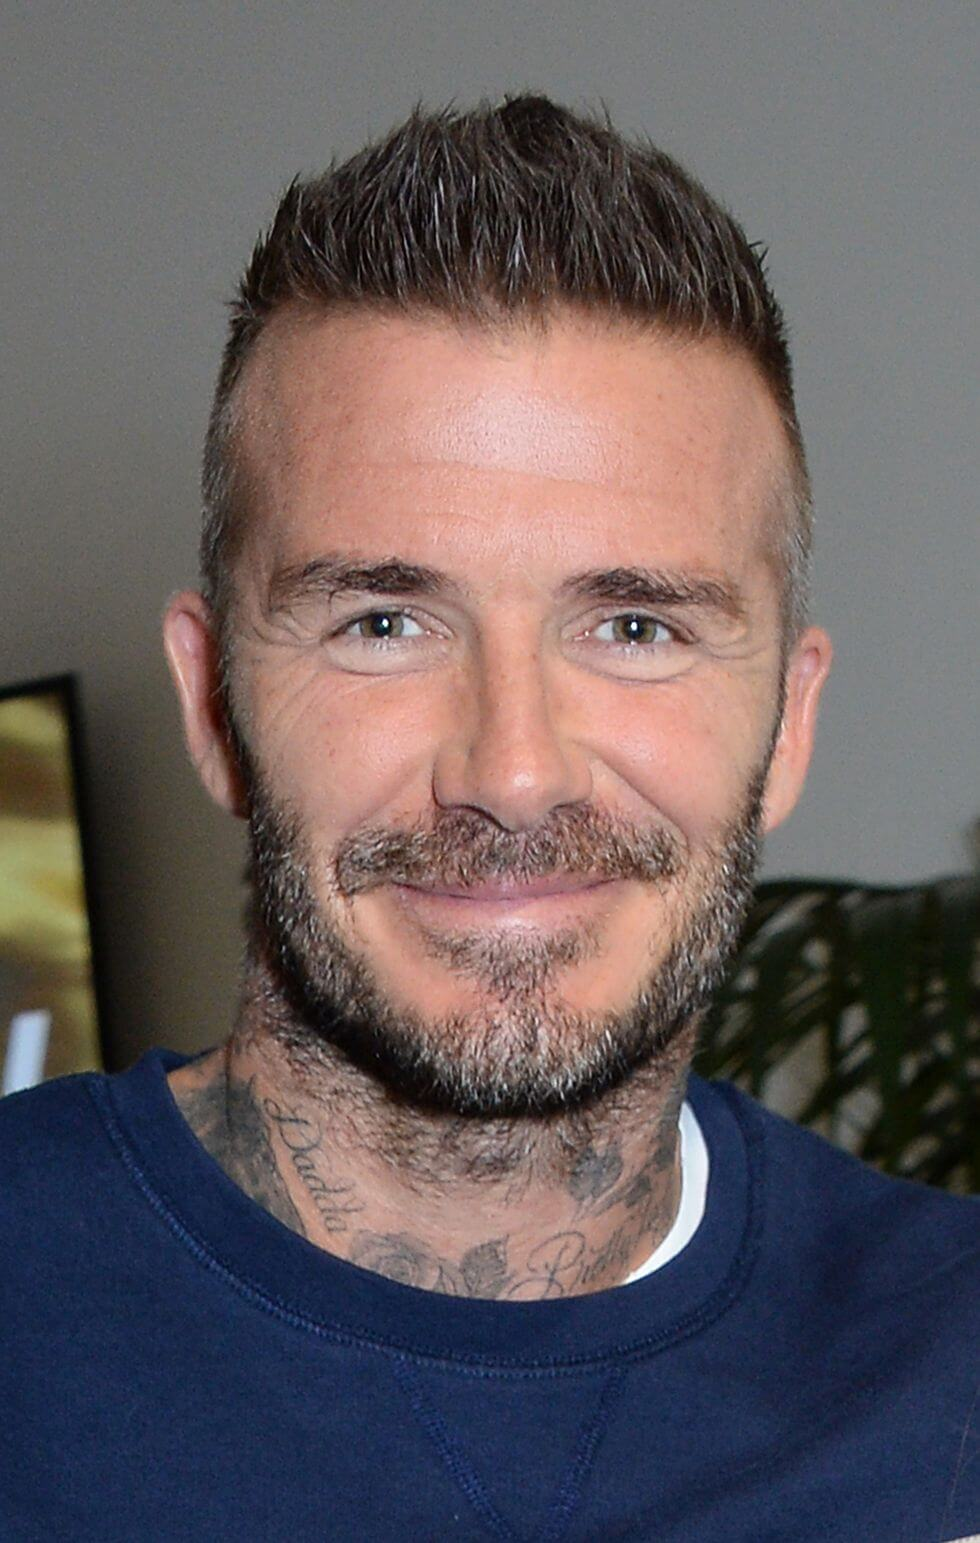 celebrities don't drink alcohol_David Beckham